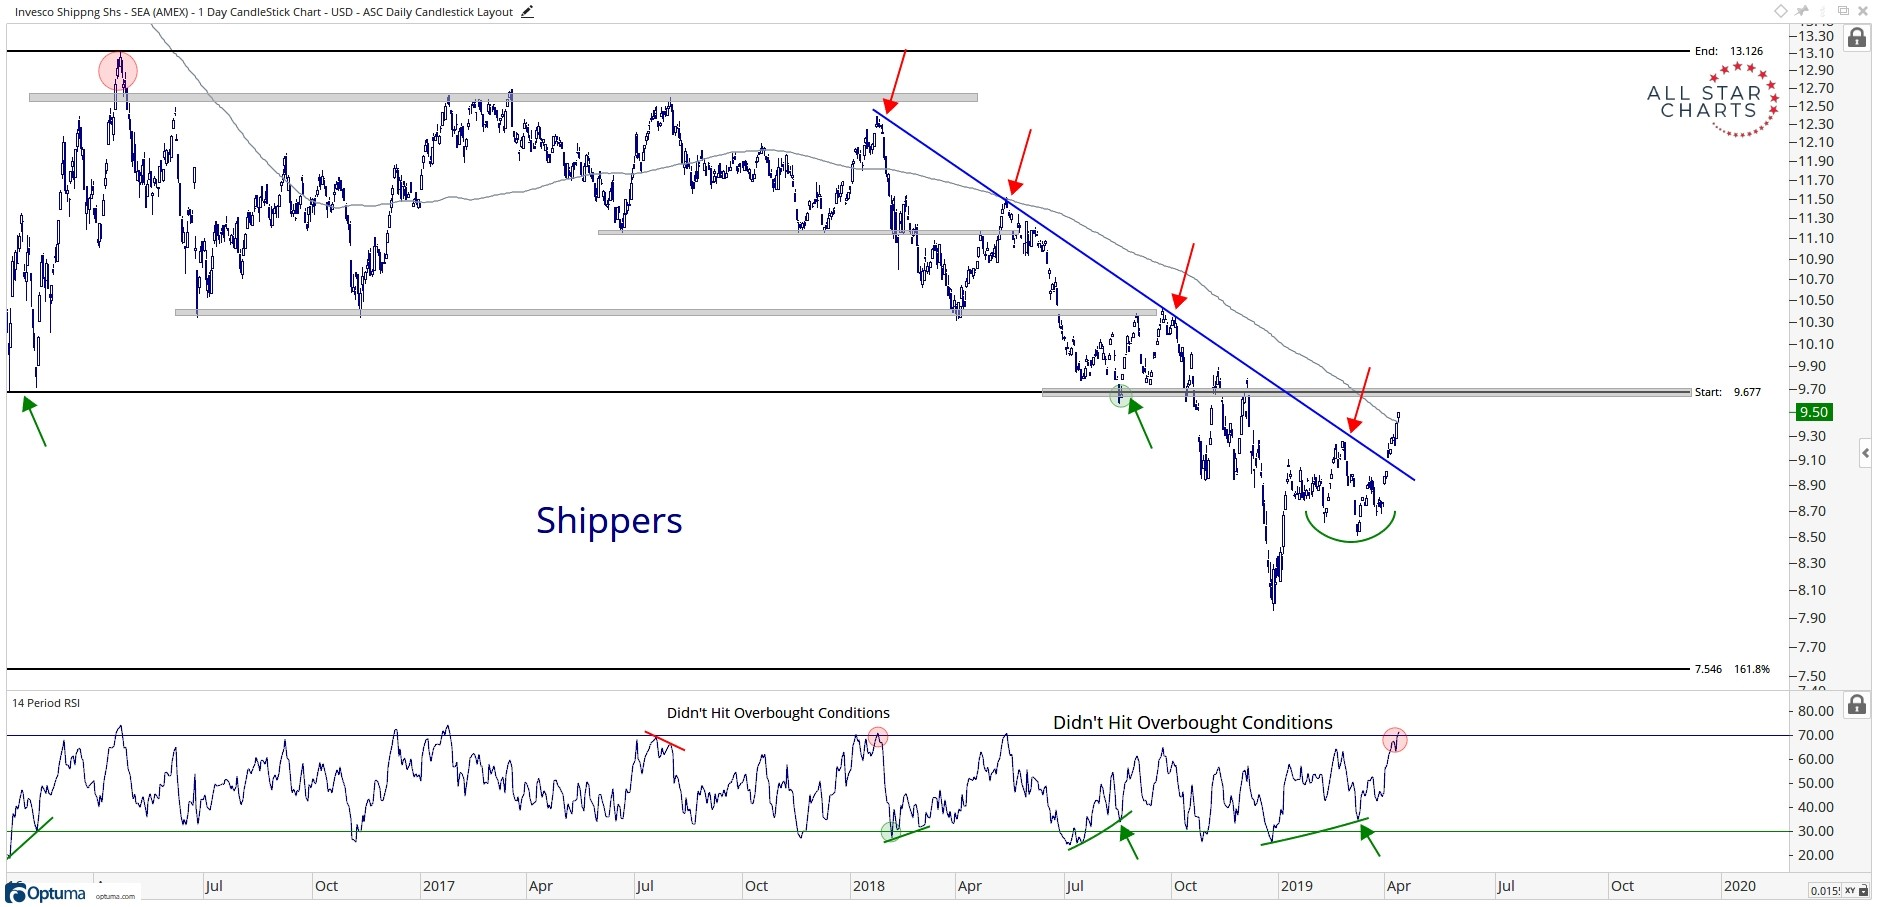 Three-year history of shipping stocks, showing a breakout from a long downtrend